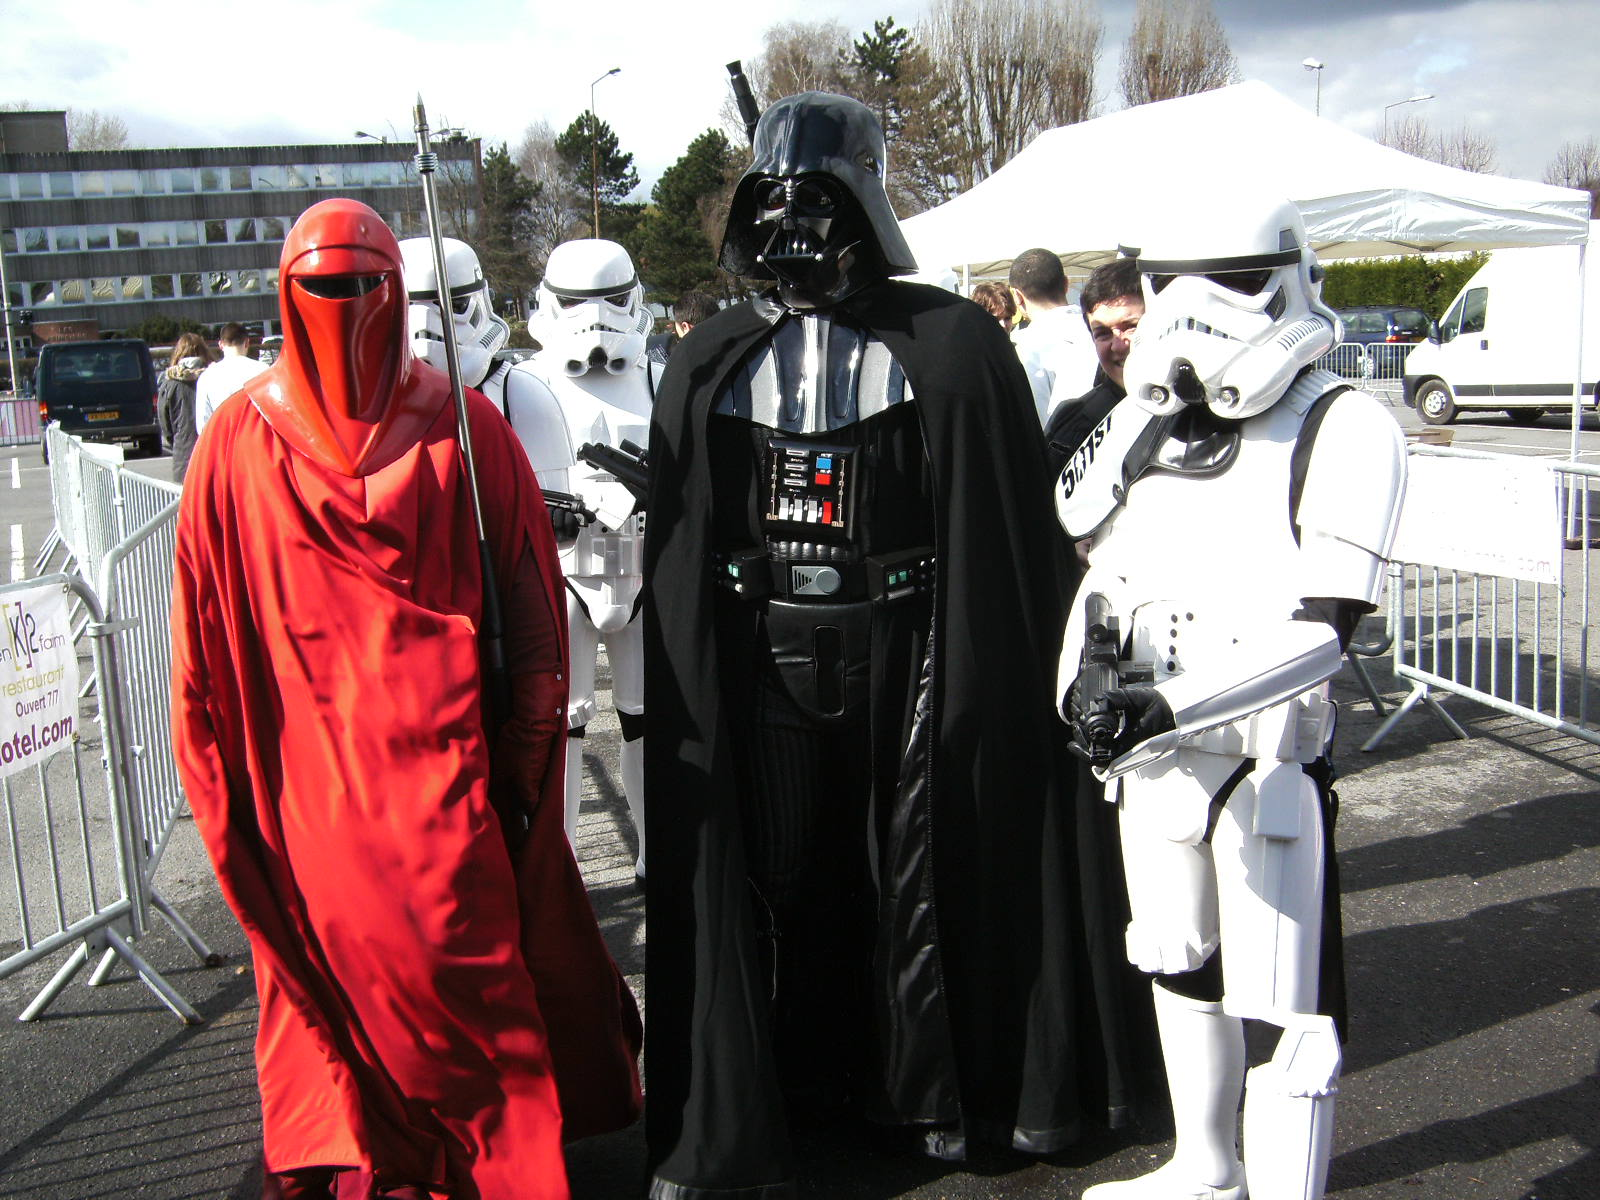 Photo 23 - Vader et ses potes, lol!